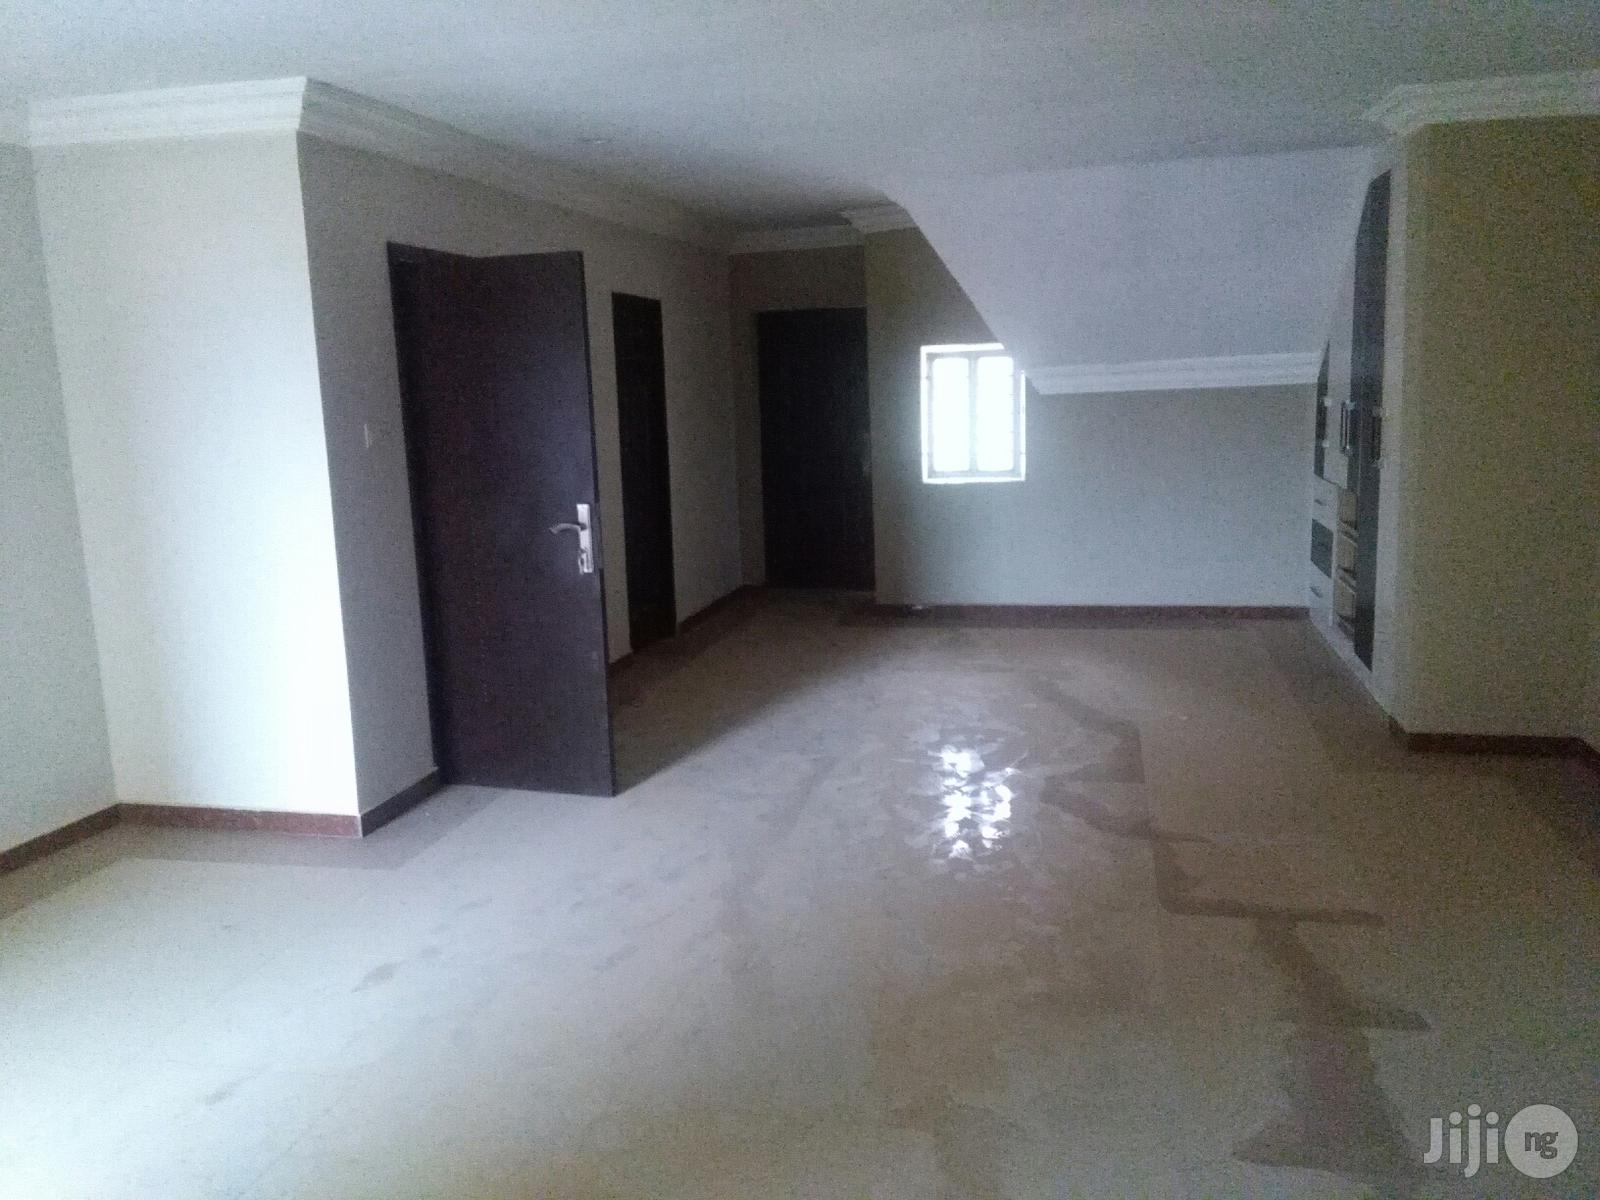 Brand New 2 Unit 5 Bedroom Penthouse Terrace Duplex For Sale   Houses & Apartments For Sale for sale in Gaduwa, Abuja (FCT) State, Nigeria